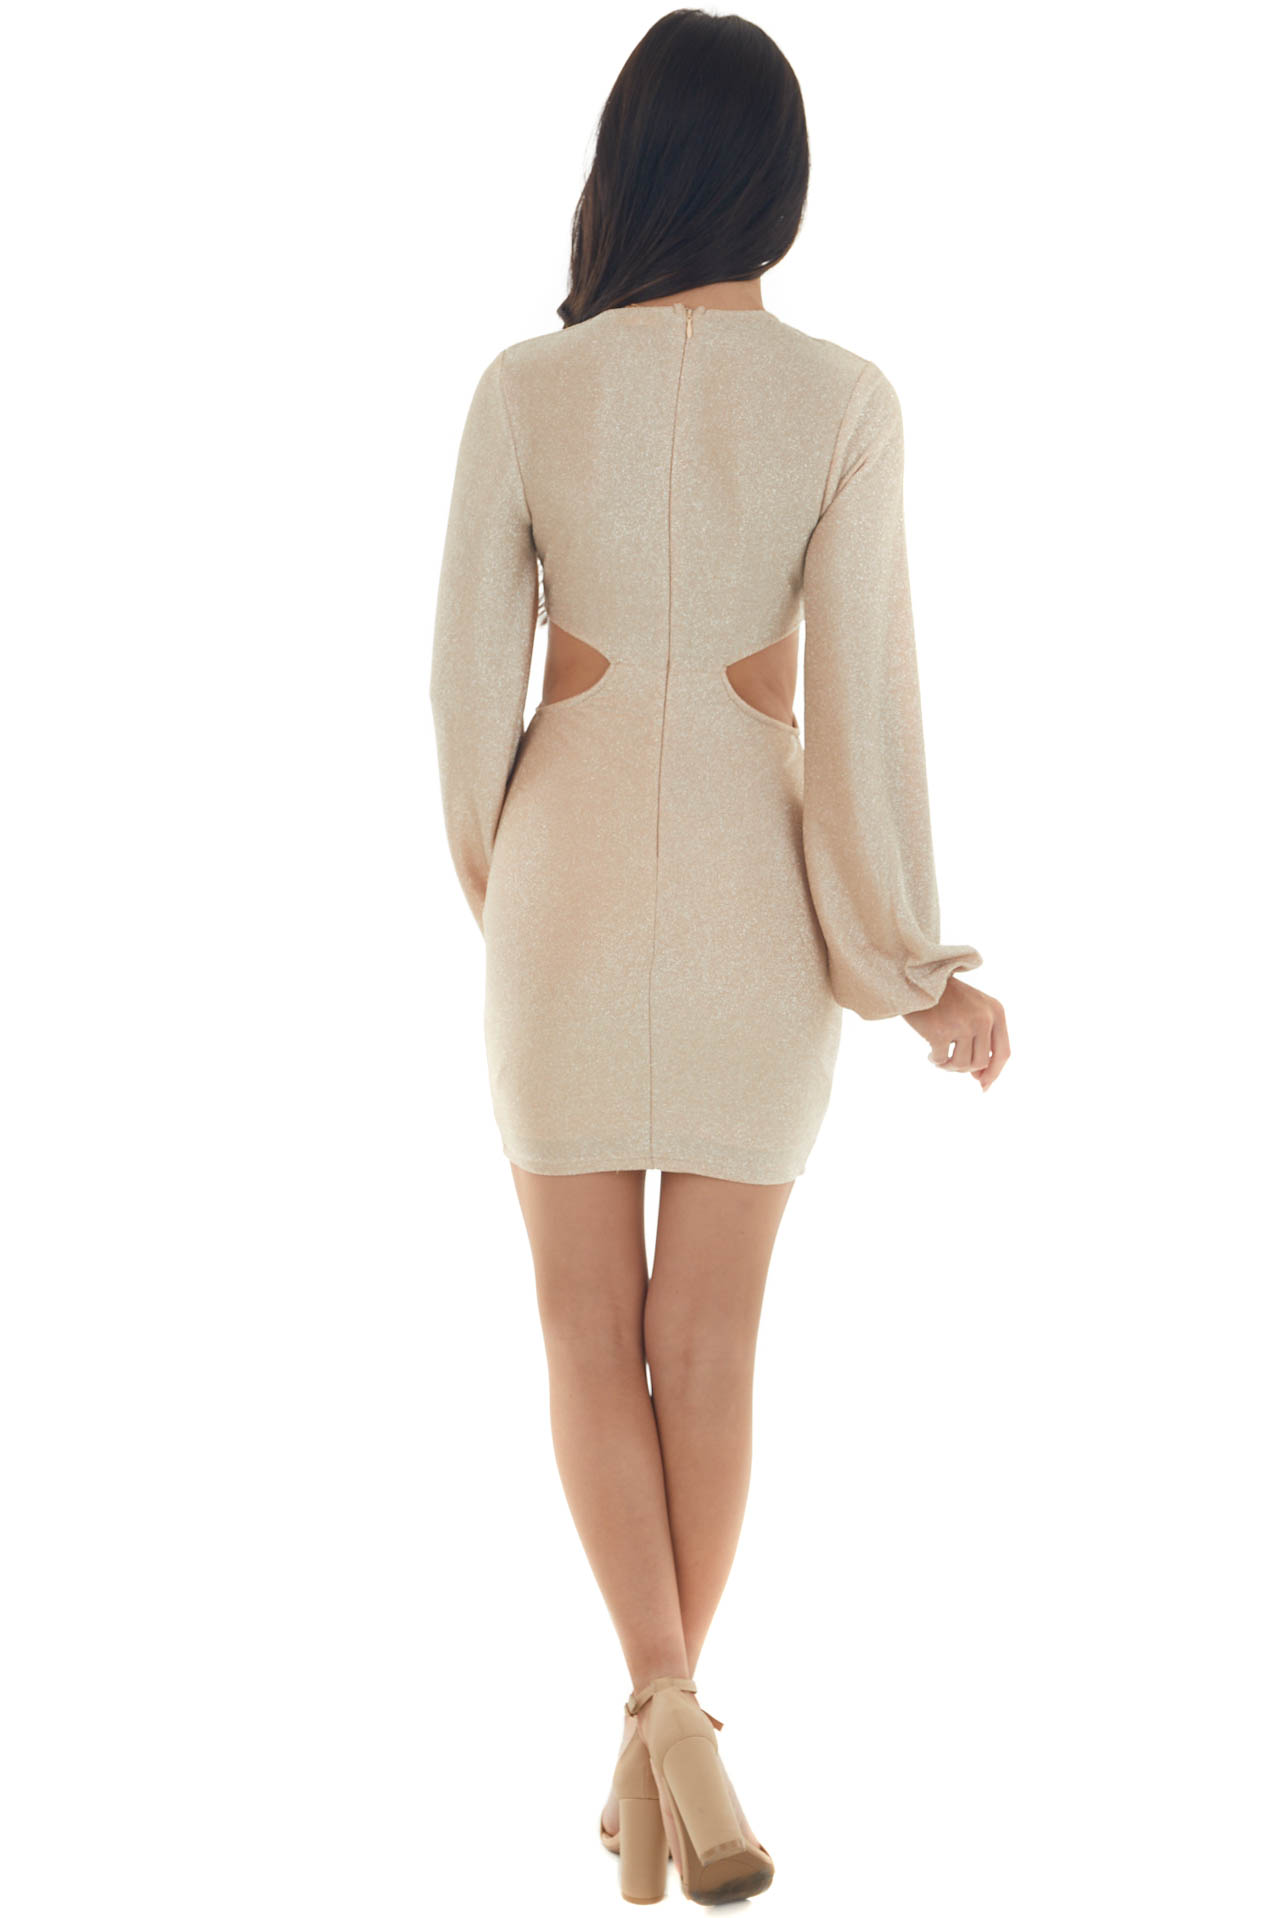 Champagne Shimmer Cut Out Waist Bodycon Dress